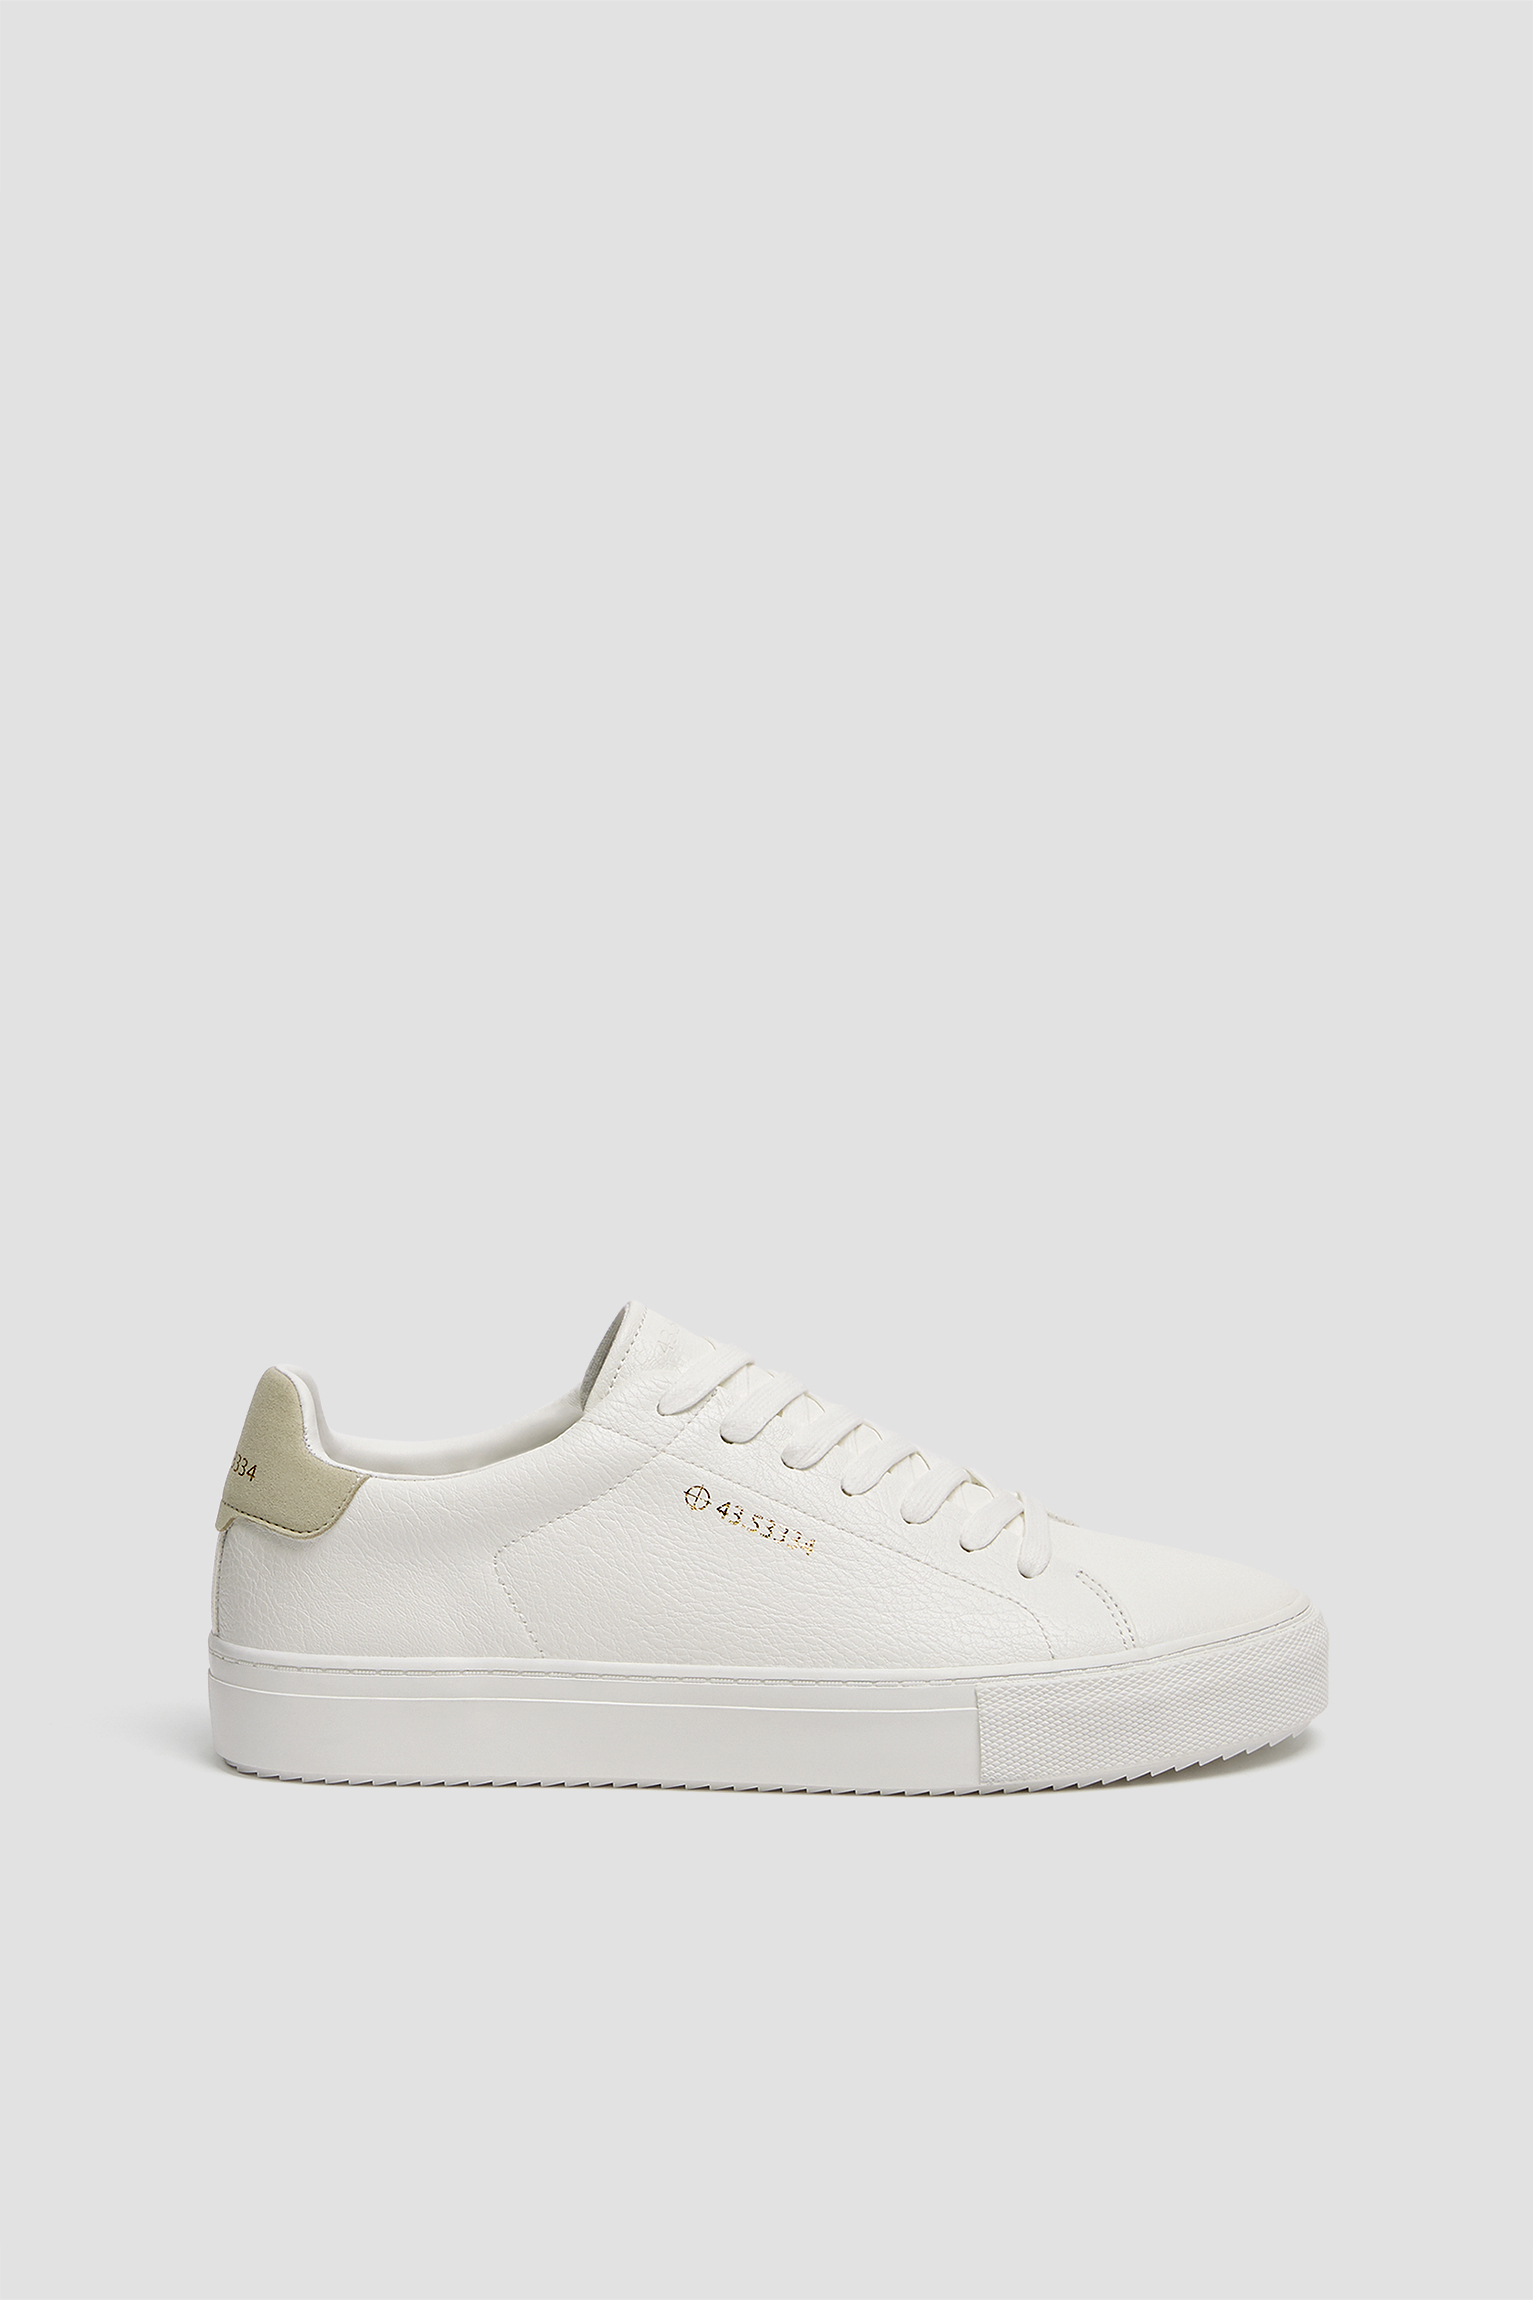 White trainers with coordinates detail